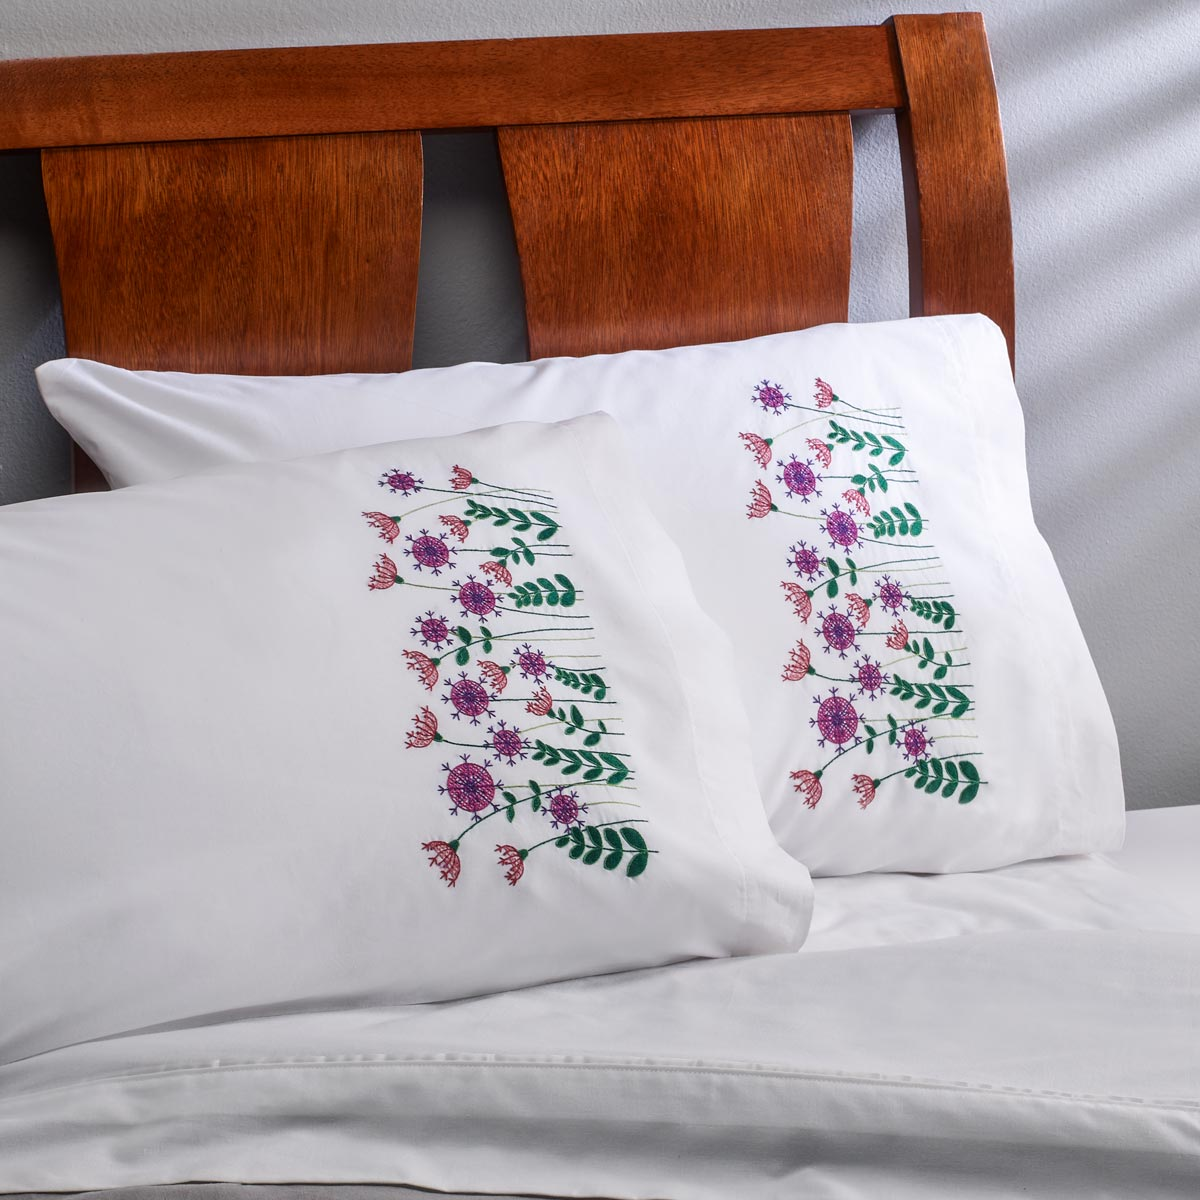 Bucilla ® Stamped Cross Stitch & Embroidery - Pillowcase Pairs - Dancing Dandelions - 44623E